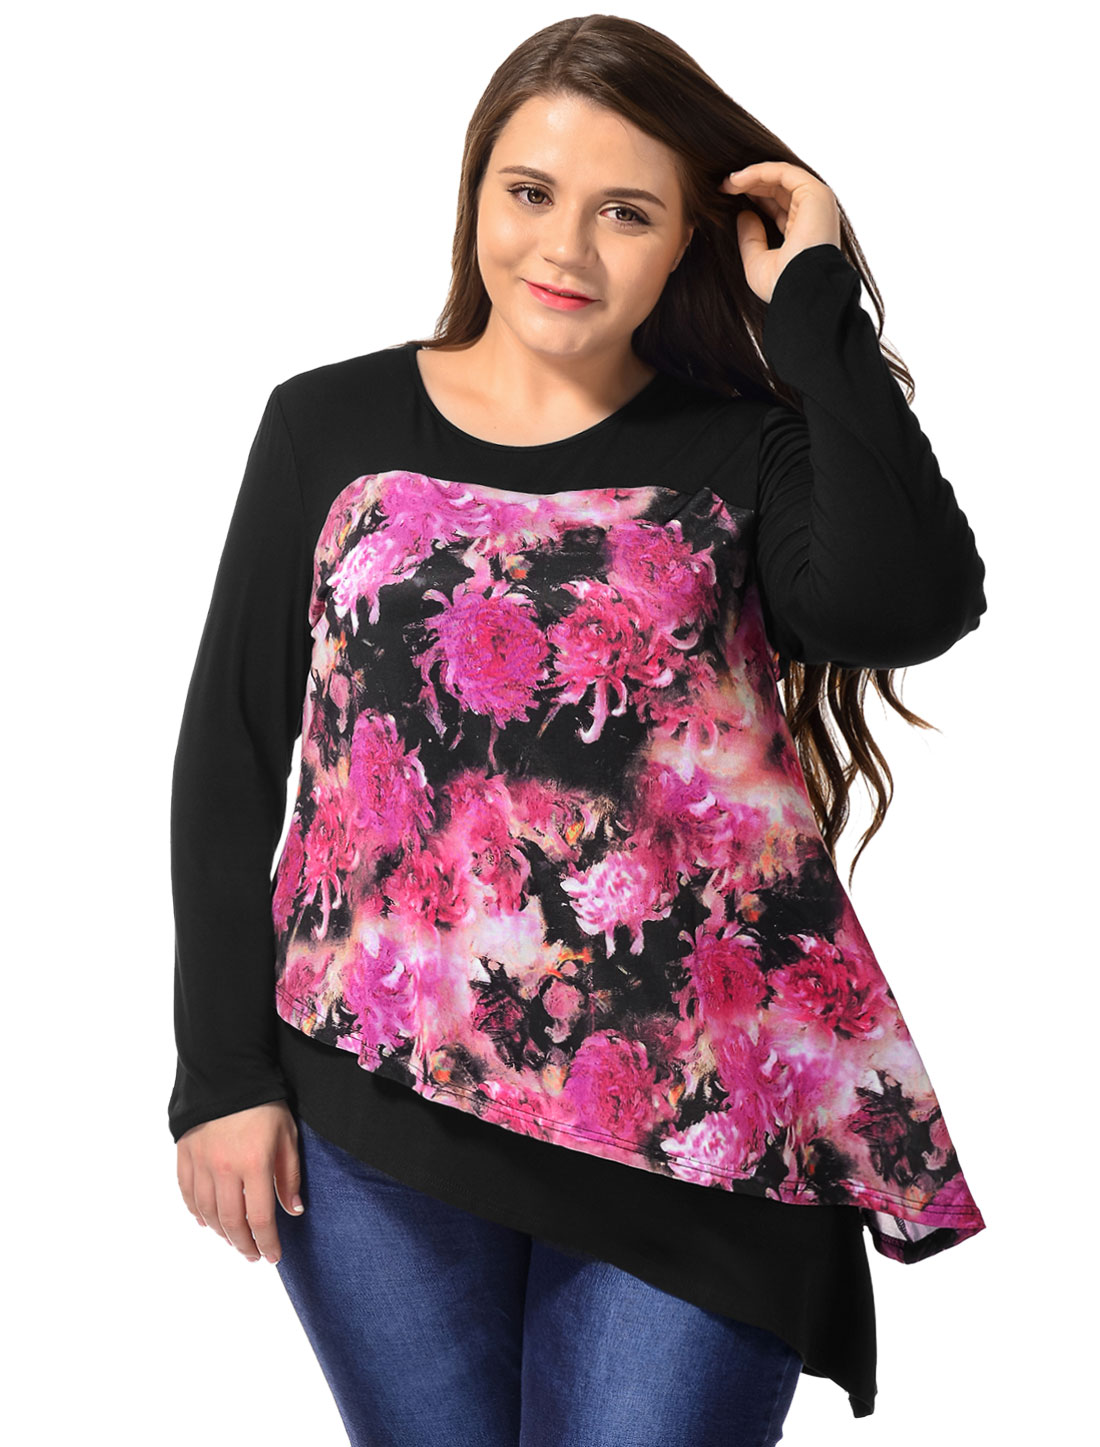 Unique Bargains Women's Plus Size Floral Prints Asymmetric Hem Layered Tunic Top Black (Size 1X)